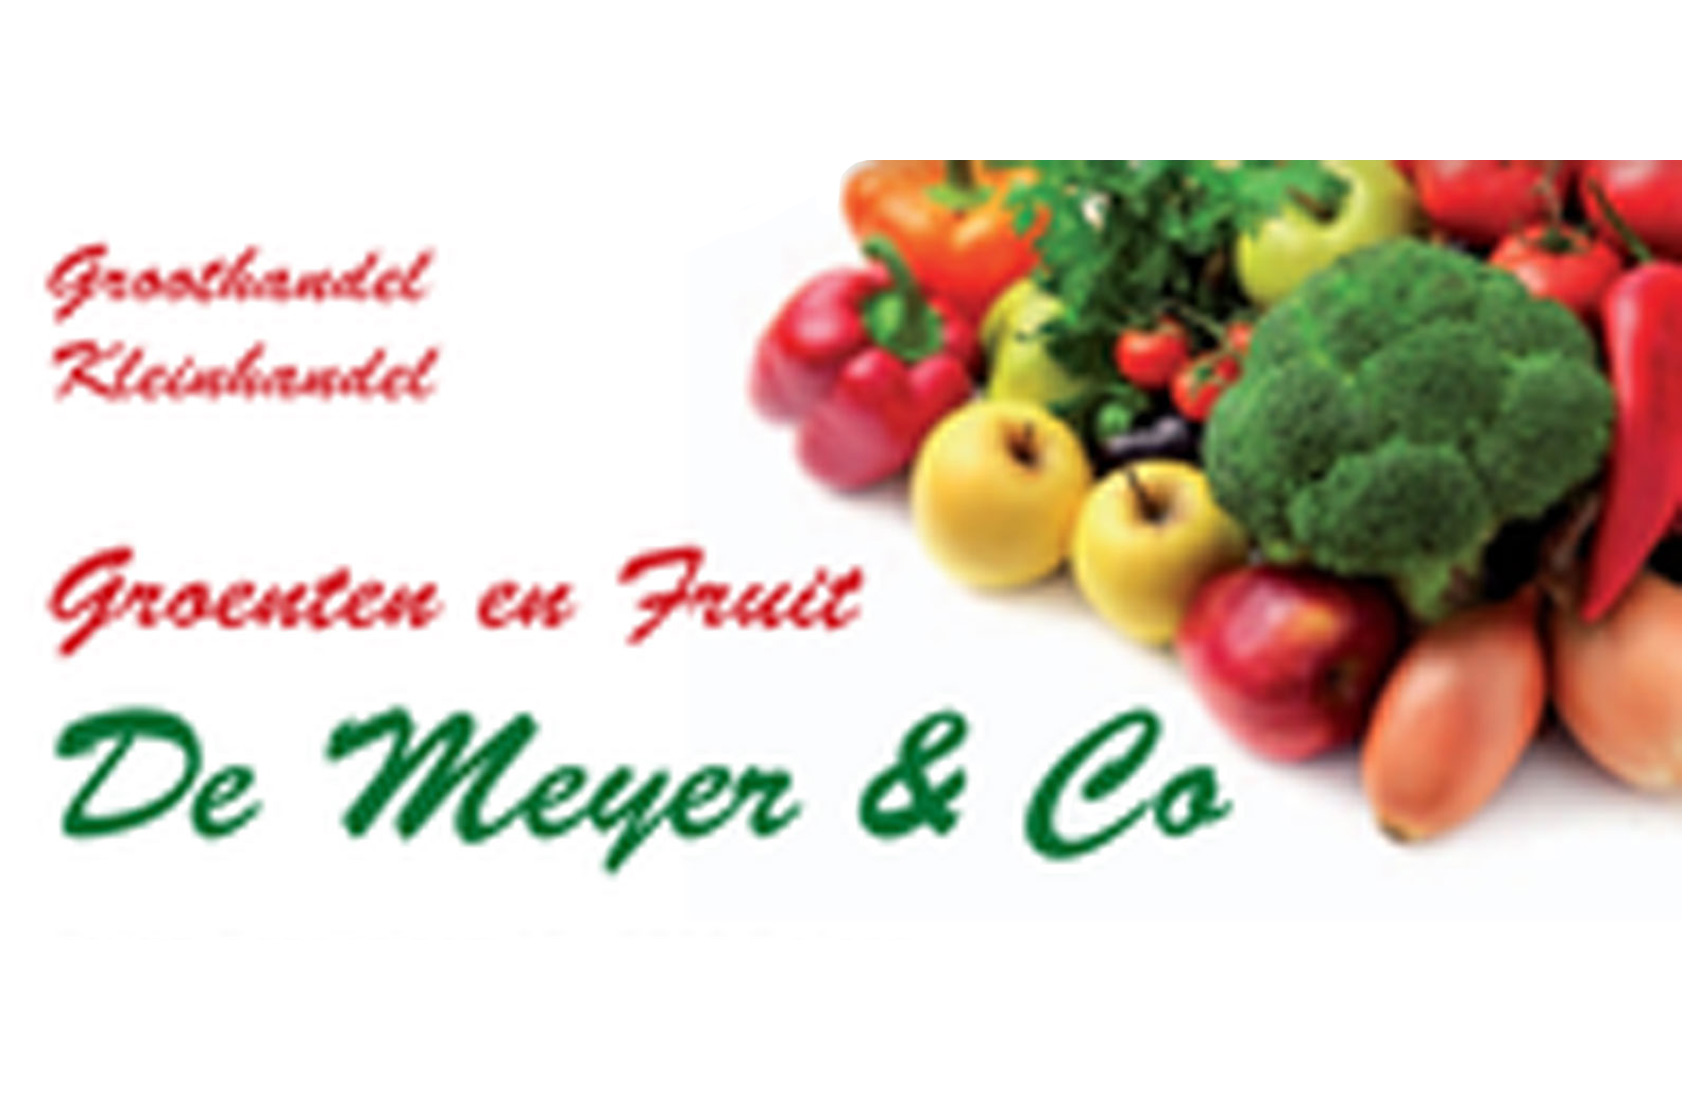 De Meyer & Co groenten & fruit